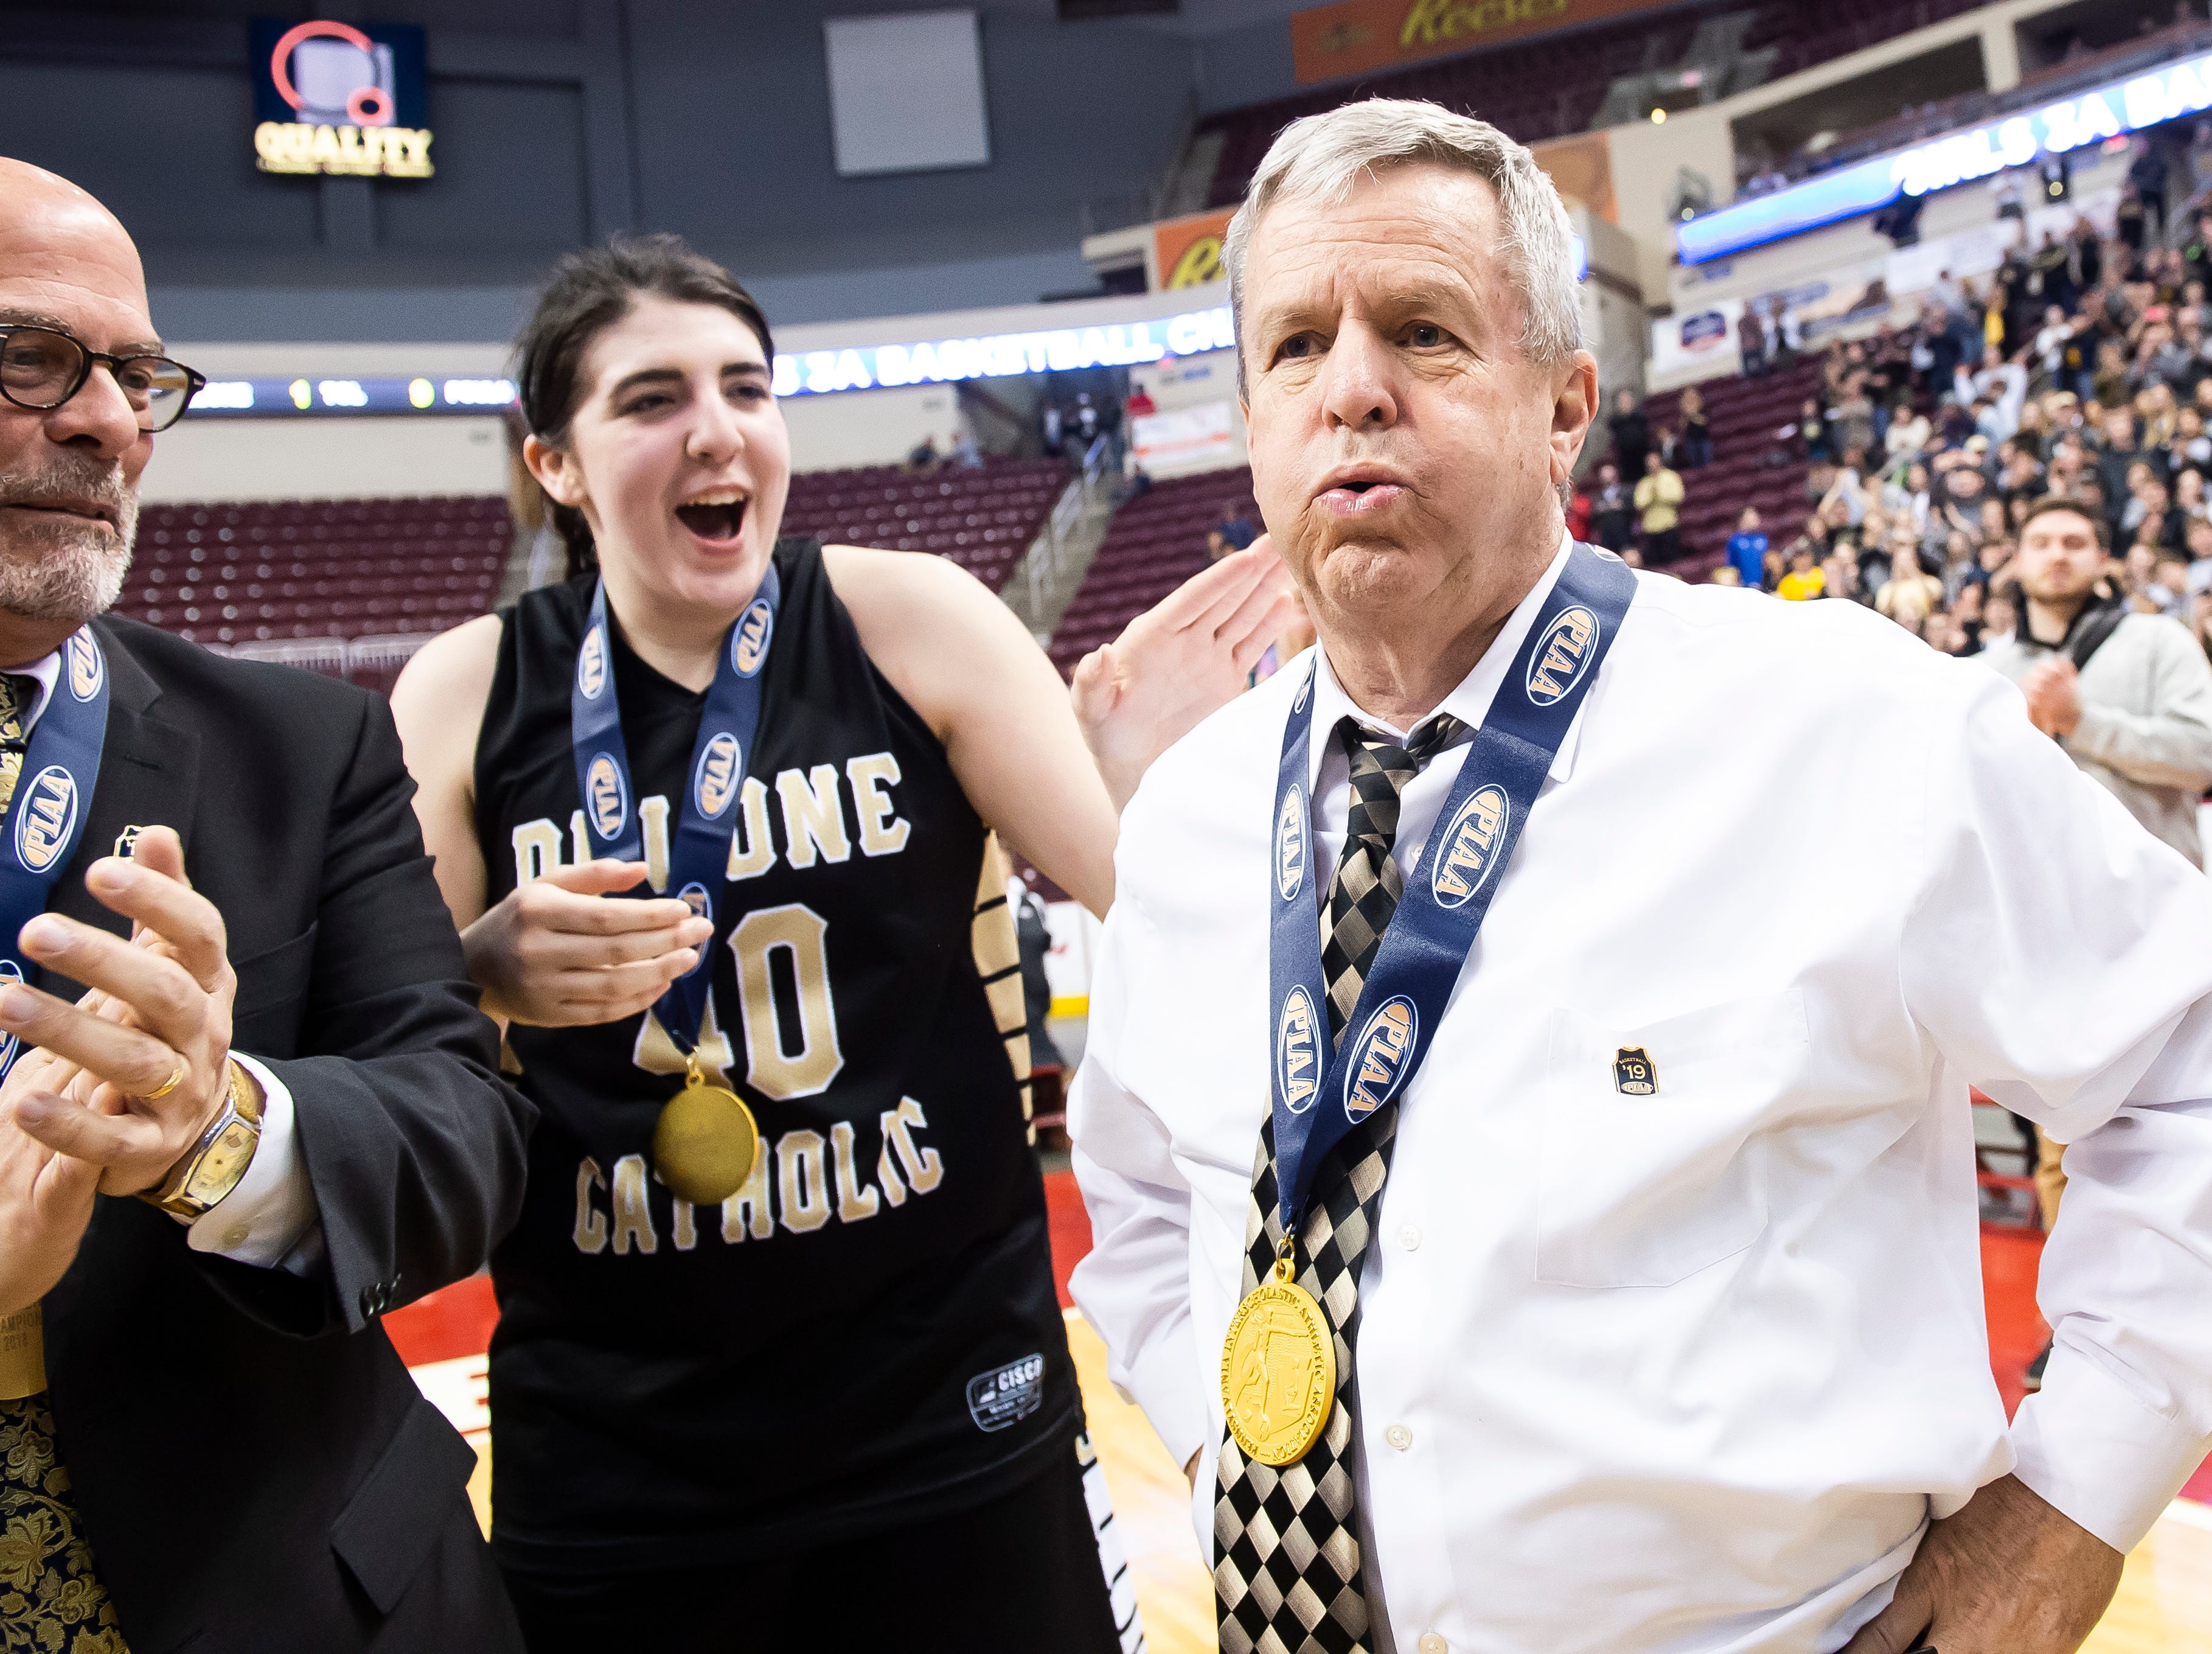 Delone Catholic head coach Gerry Eckenrode lets out a deep breath after the Squirettes defeated Dunmore 49-43 in the PIAA 3A championship game at the Giant Center in Hershey on Thursday, March 21, 2019.